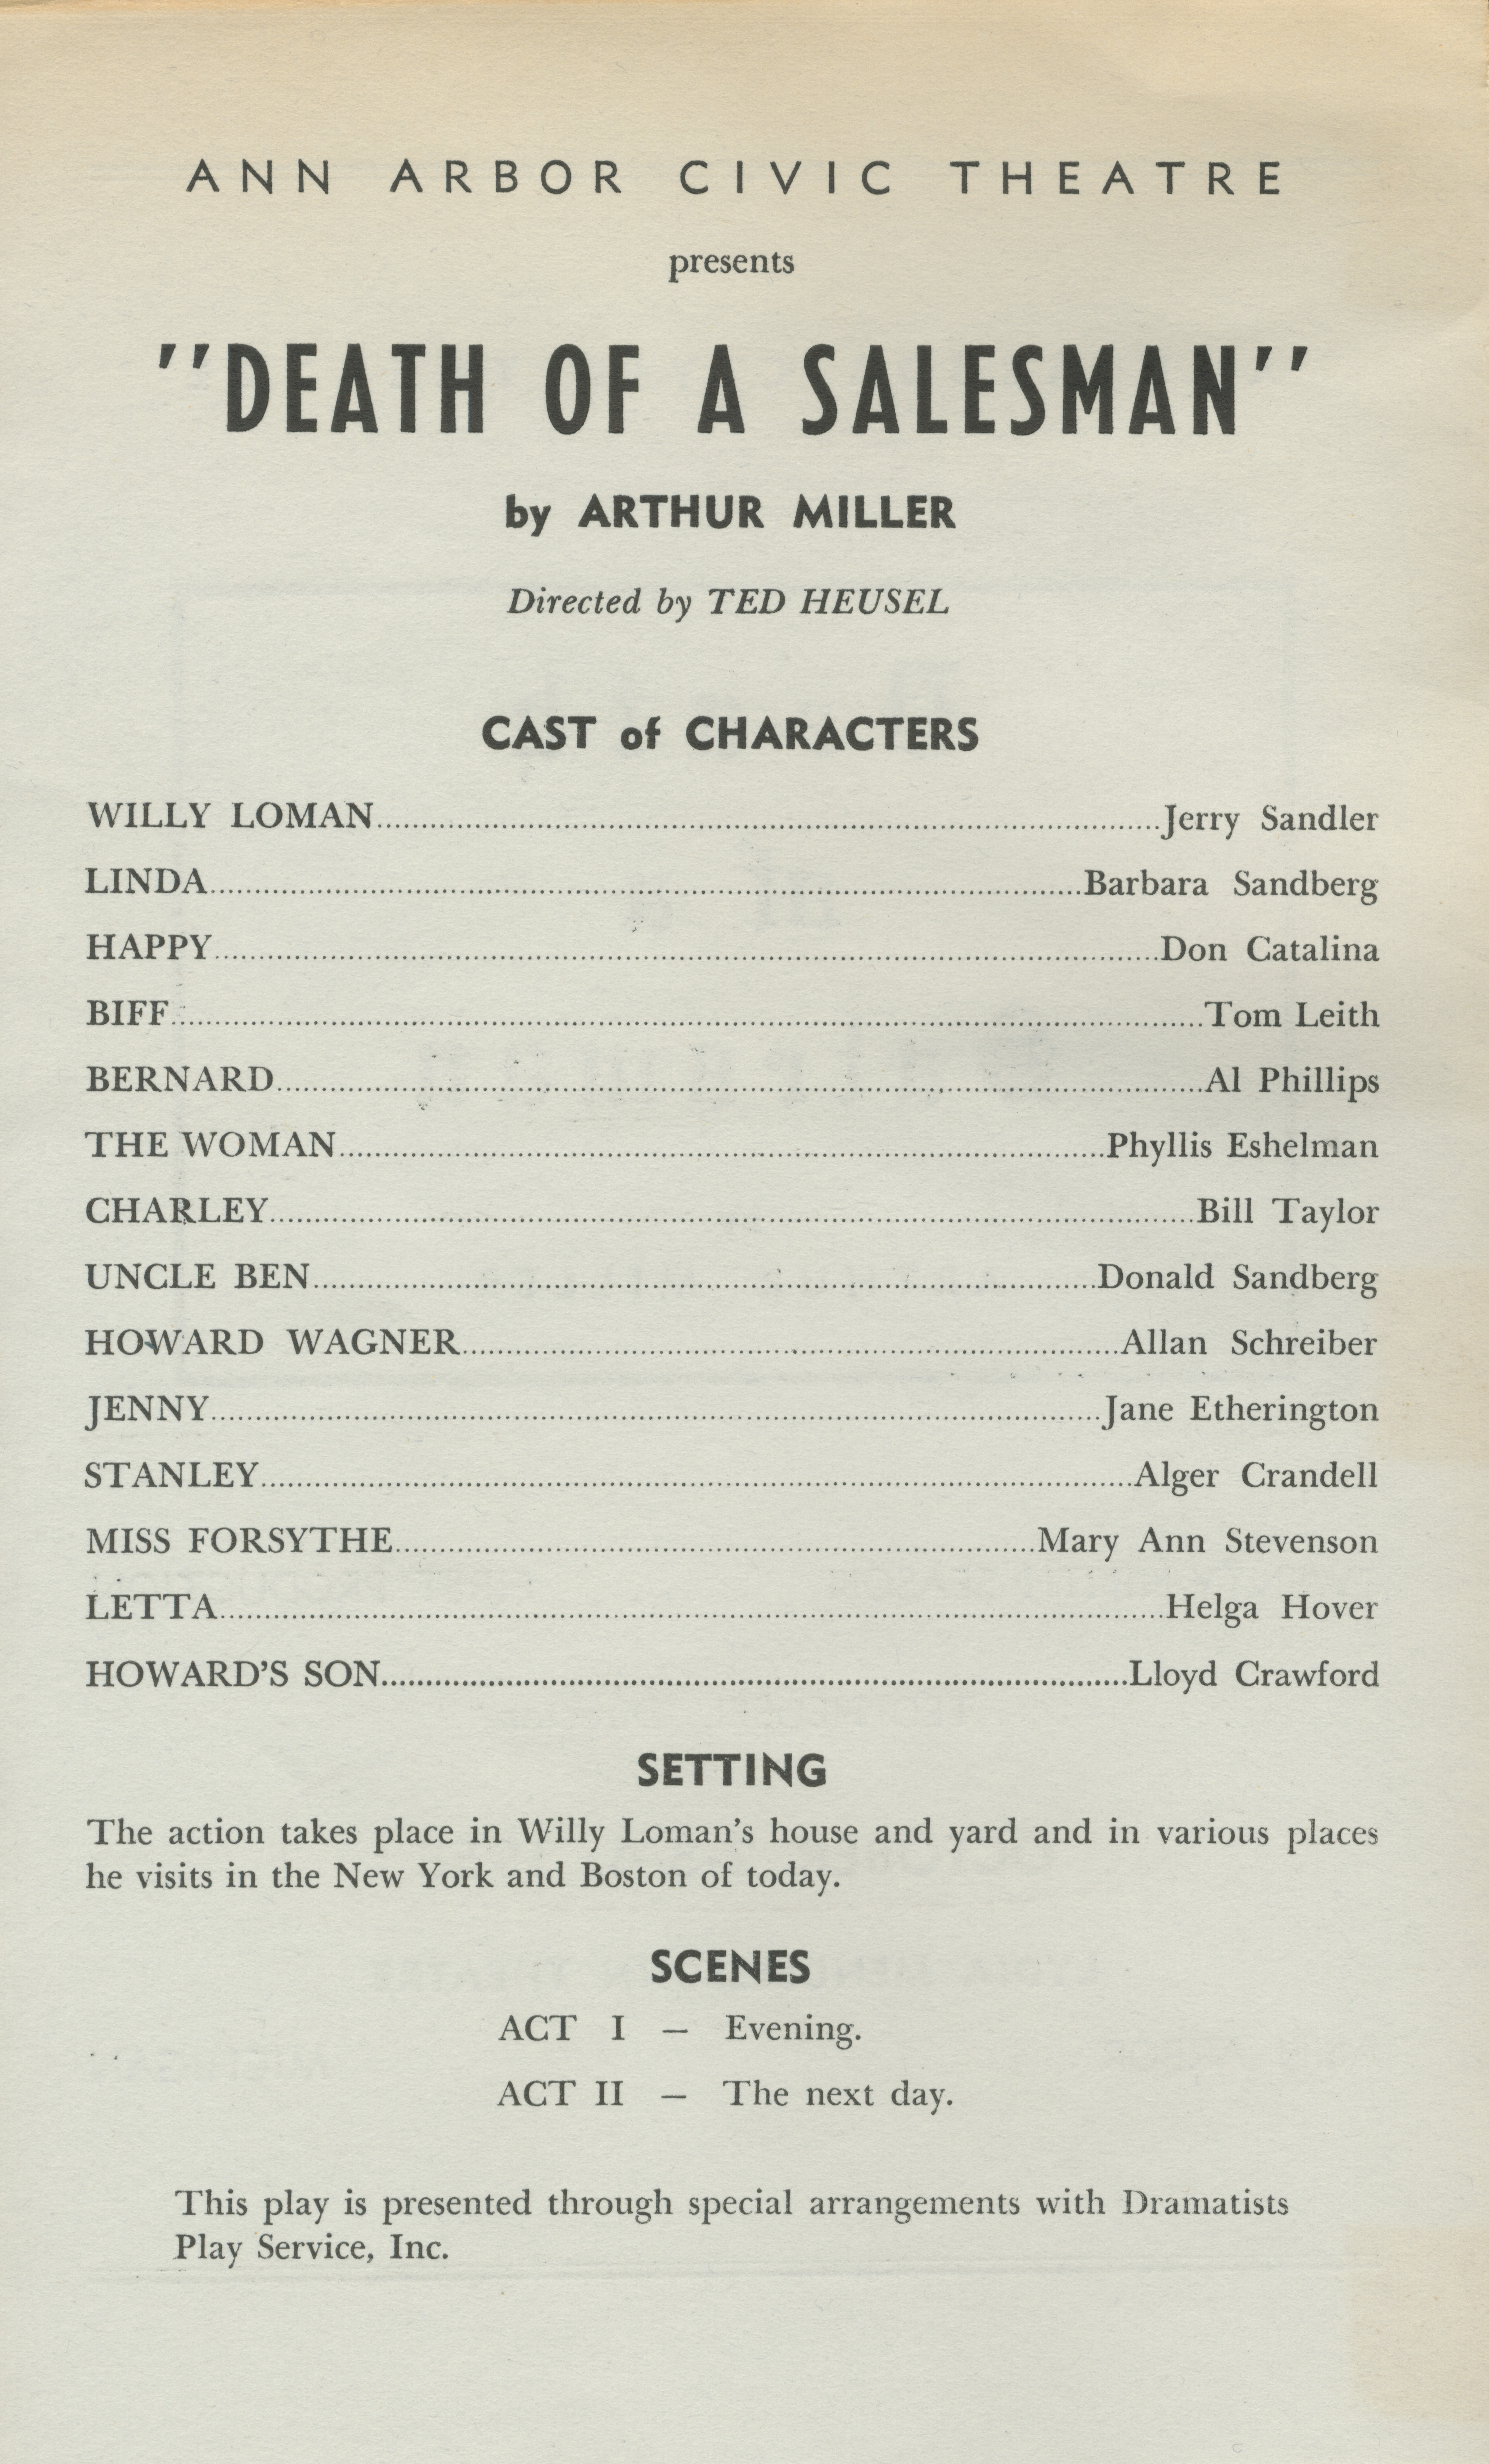 an examination of the character of willy loman in arthur millers death of a salesman